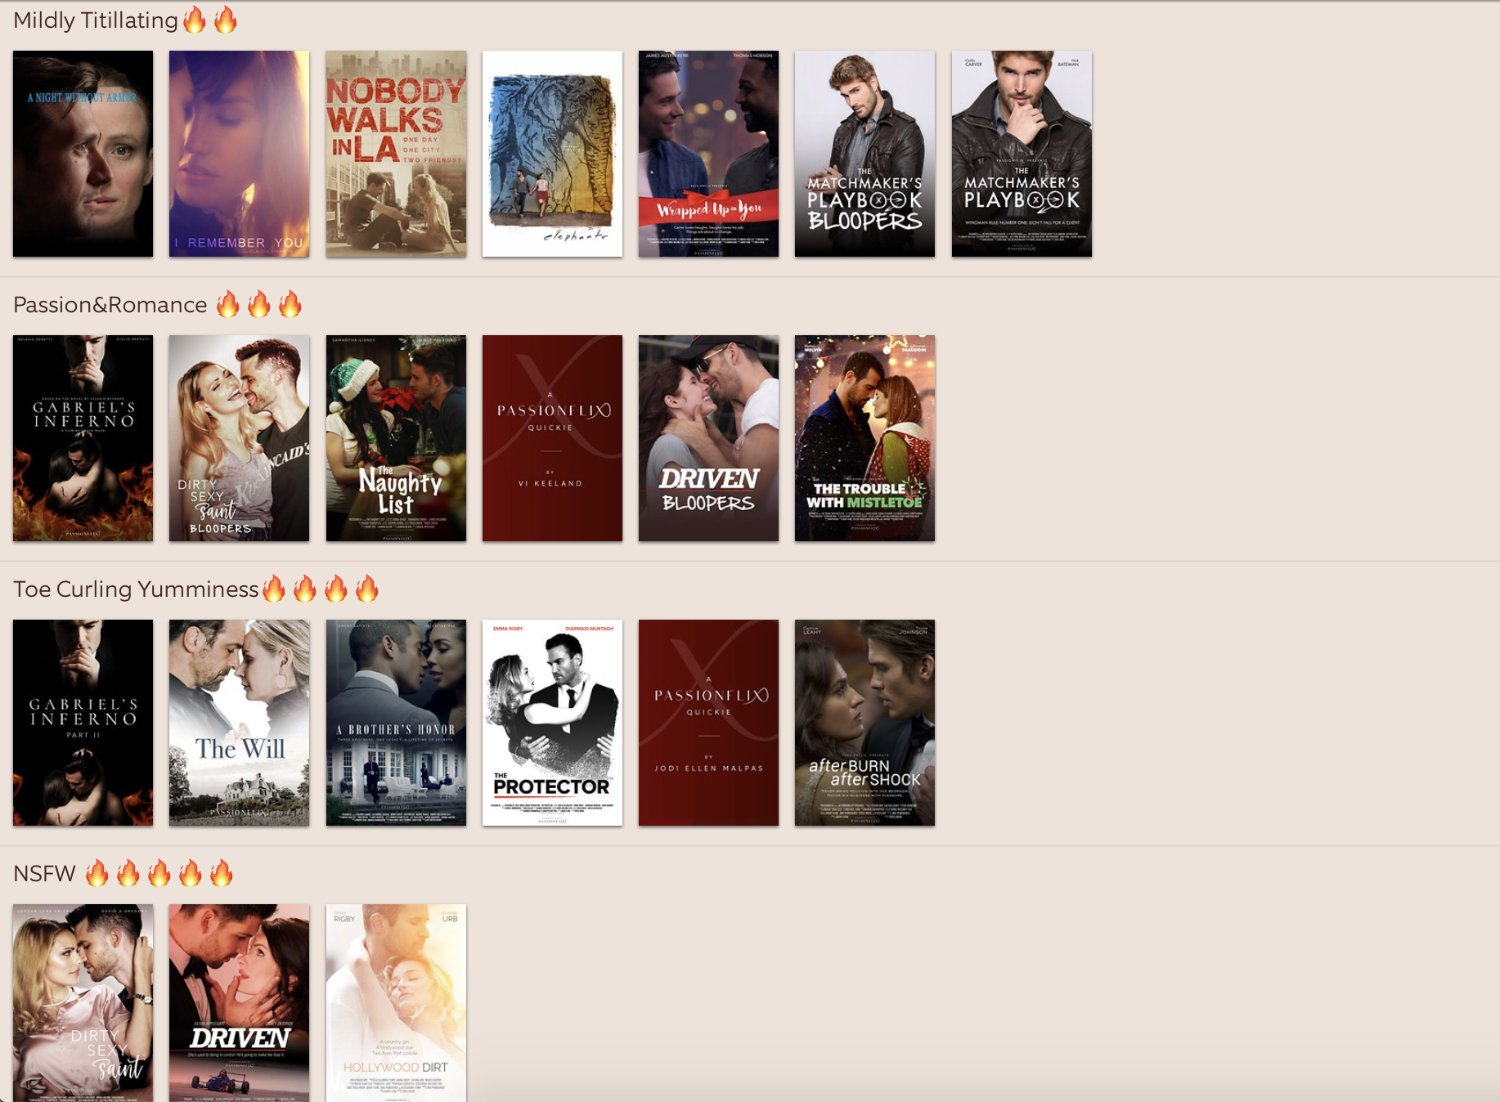 I Tried Passionflix & This Is It What I Think. Streaming Service. Romance Books Turned Into Movies. Romance Movies. Best Romance Movies To Watch. Romance Movies Watch List. Passionflix Review. What's Passionflix. Elephant on the Road.